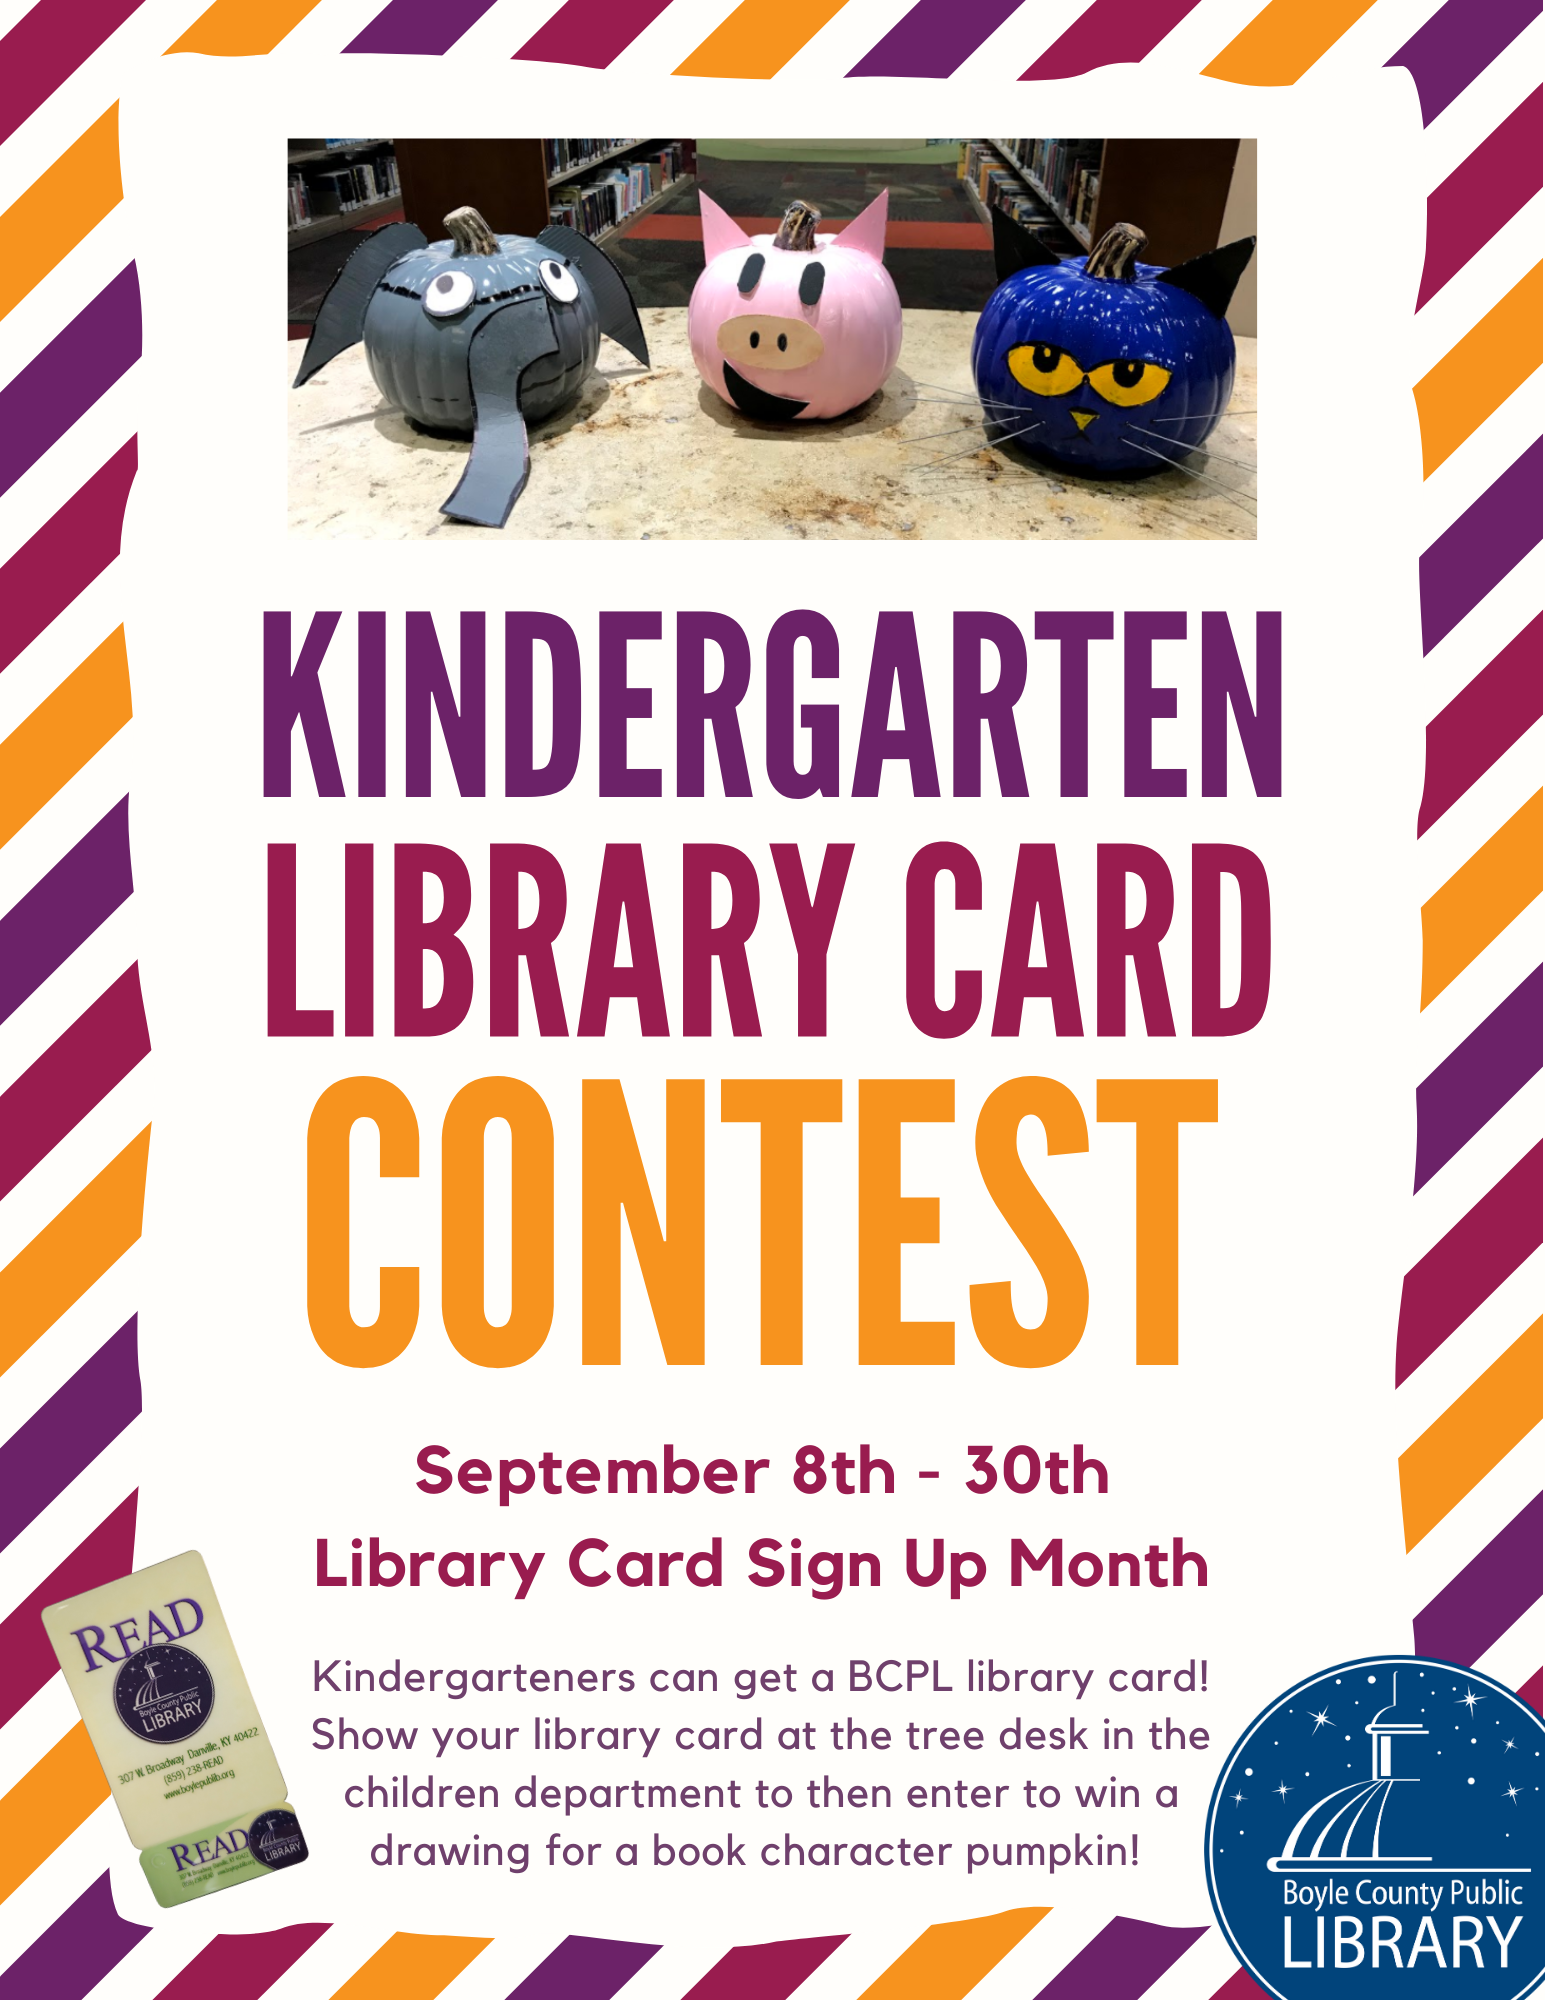 Kindergarten Library Card Contest